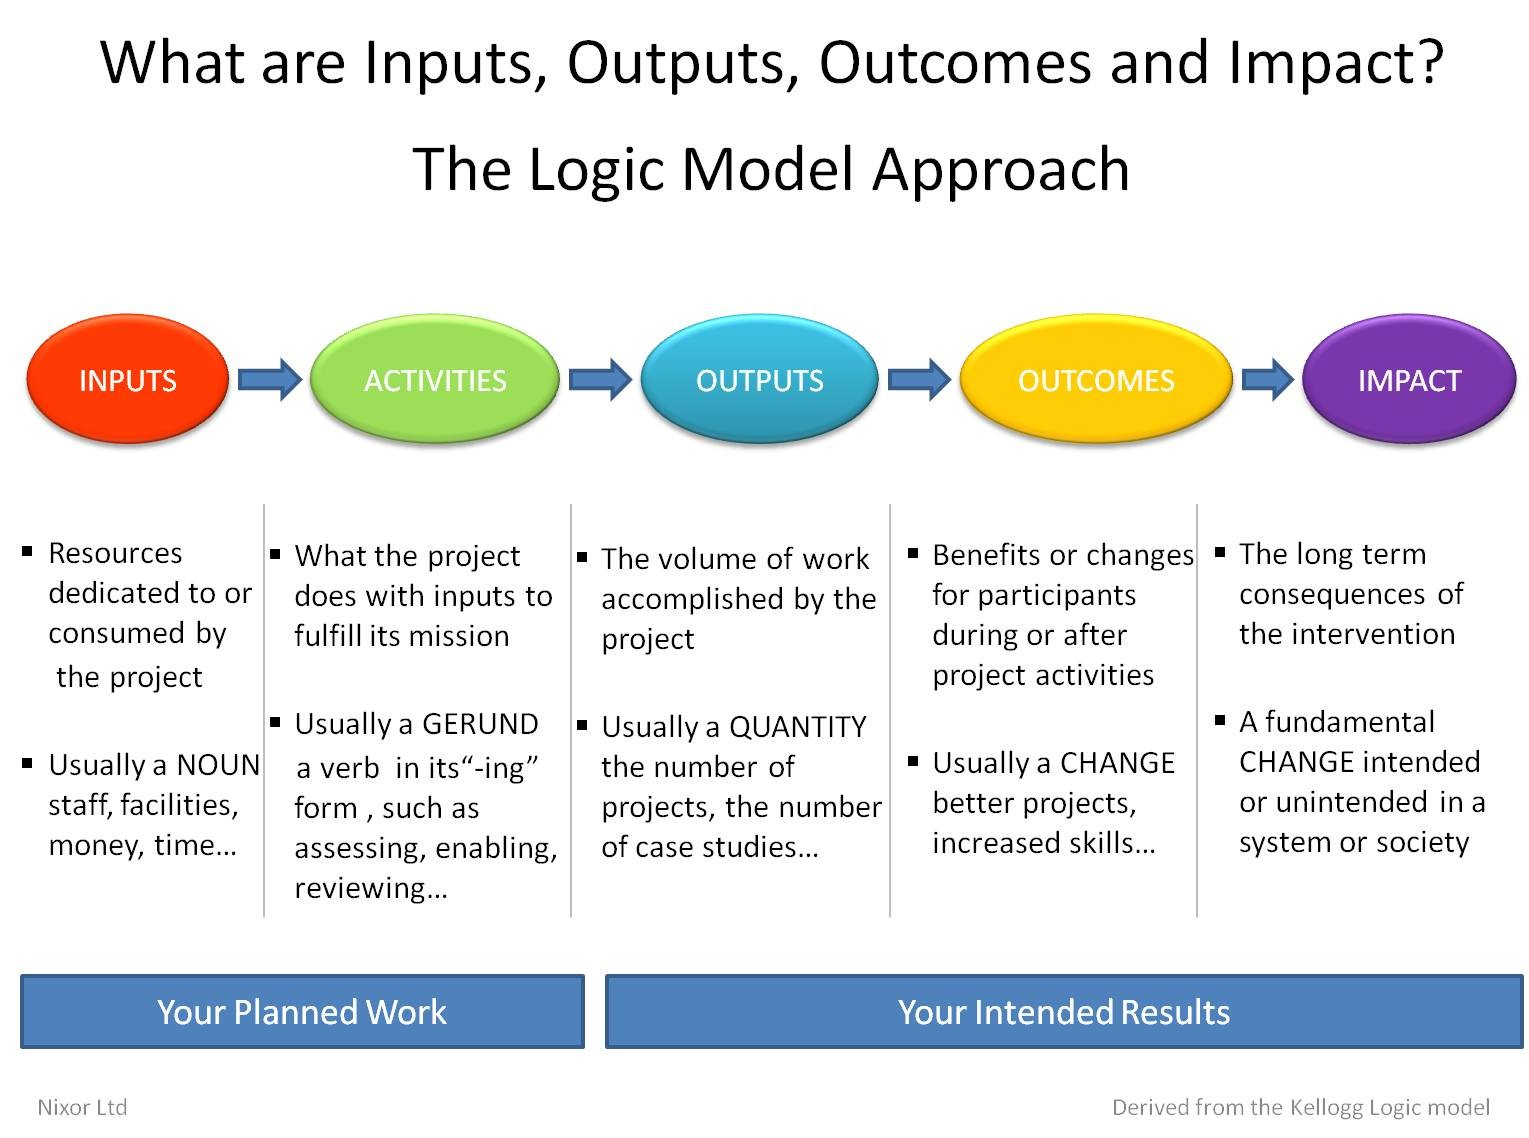 Adapted from the Kellogg model   of inputs to impact.   Source:    https://instact.wordpress.com/tag/impact/